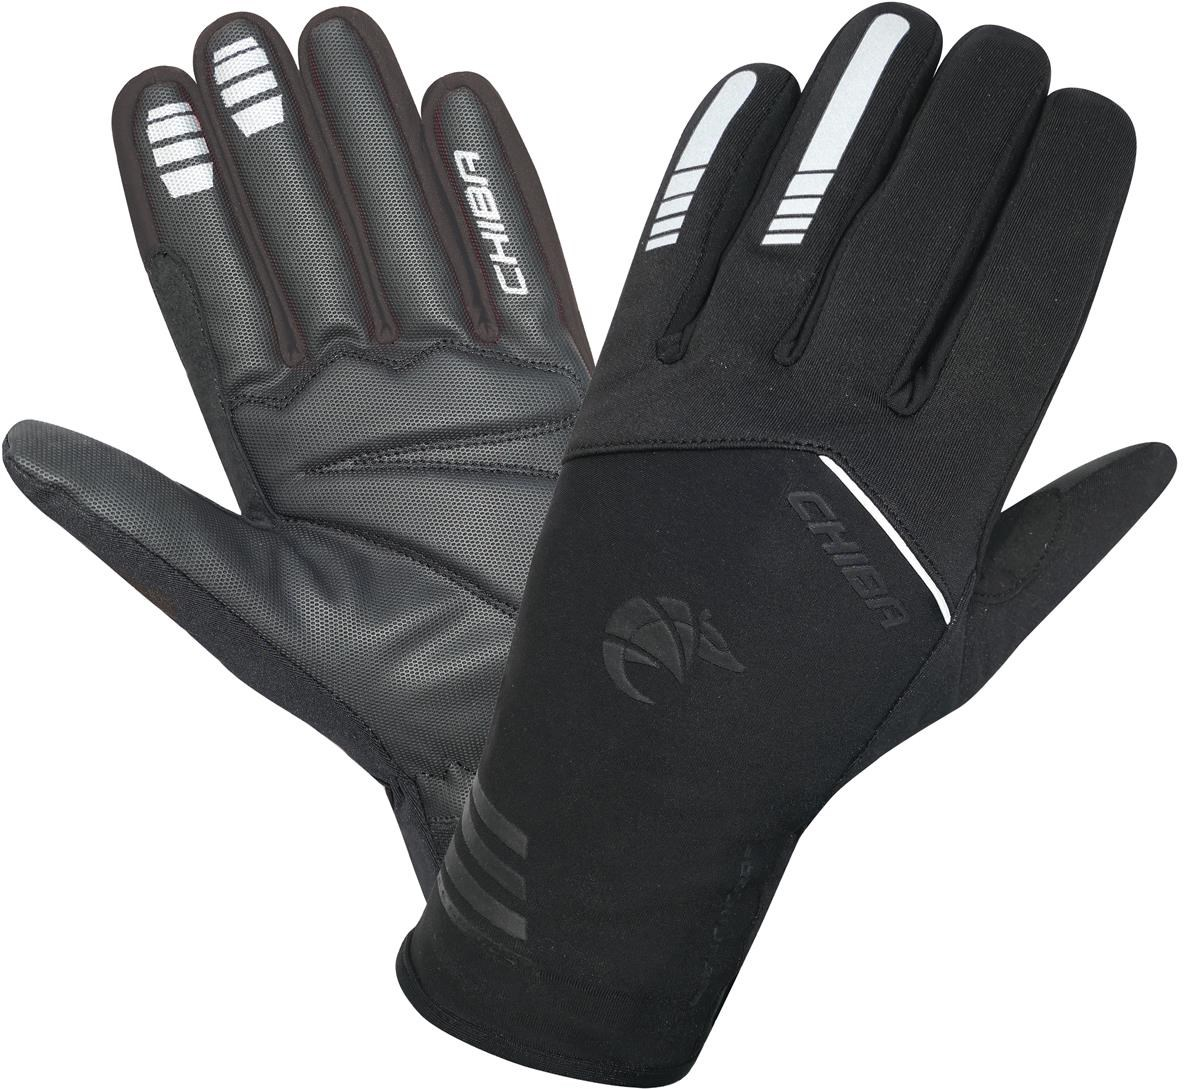 Chiba 2nd Skin Waterproof & Windprotect Long Finger Cycling Gloves   Gloves